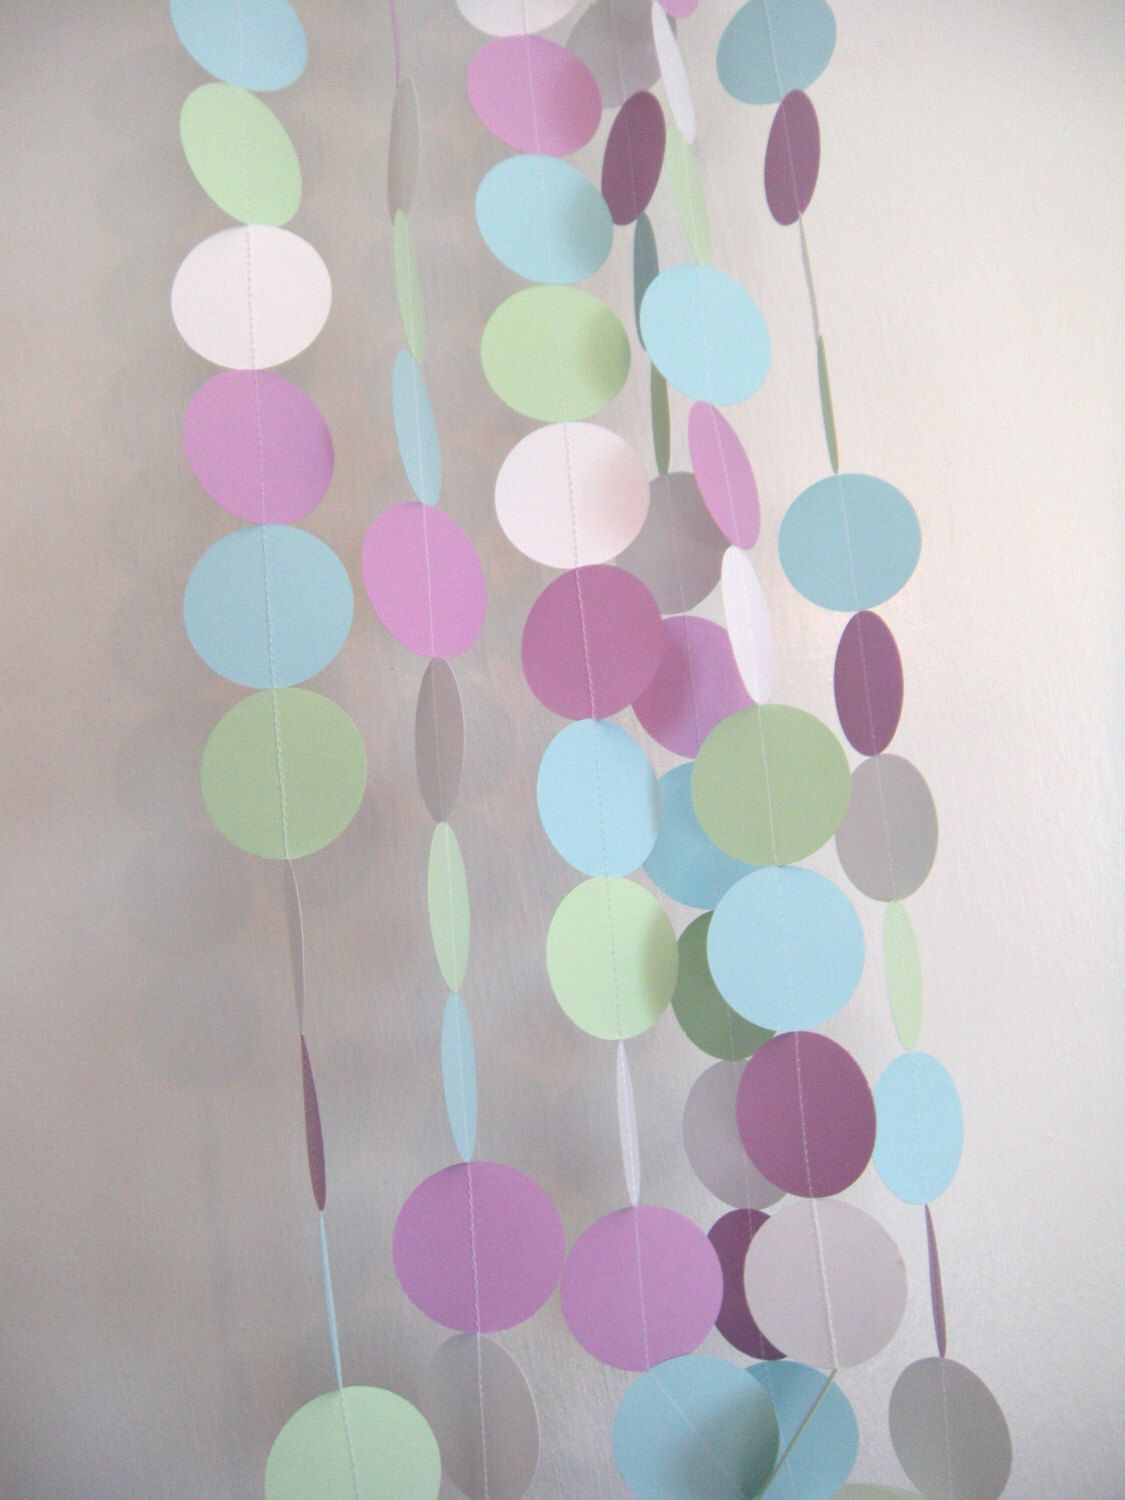 Baby Shower/ Mermaid Party Paper Garland - Pastel Green, Pastel Blue, Pastel Purple and White by AlbynoBearCreations on Etsy https://www.etsy.com/listing/242975313/baby-shower-mermaid-party-paper-garland